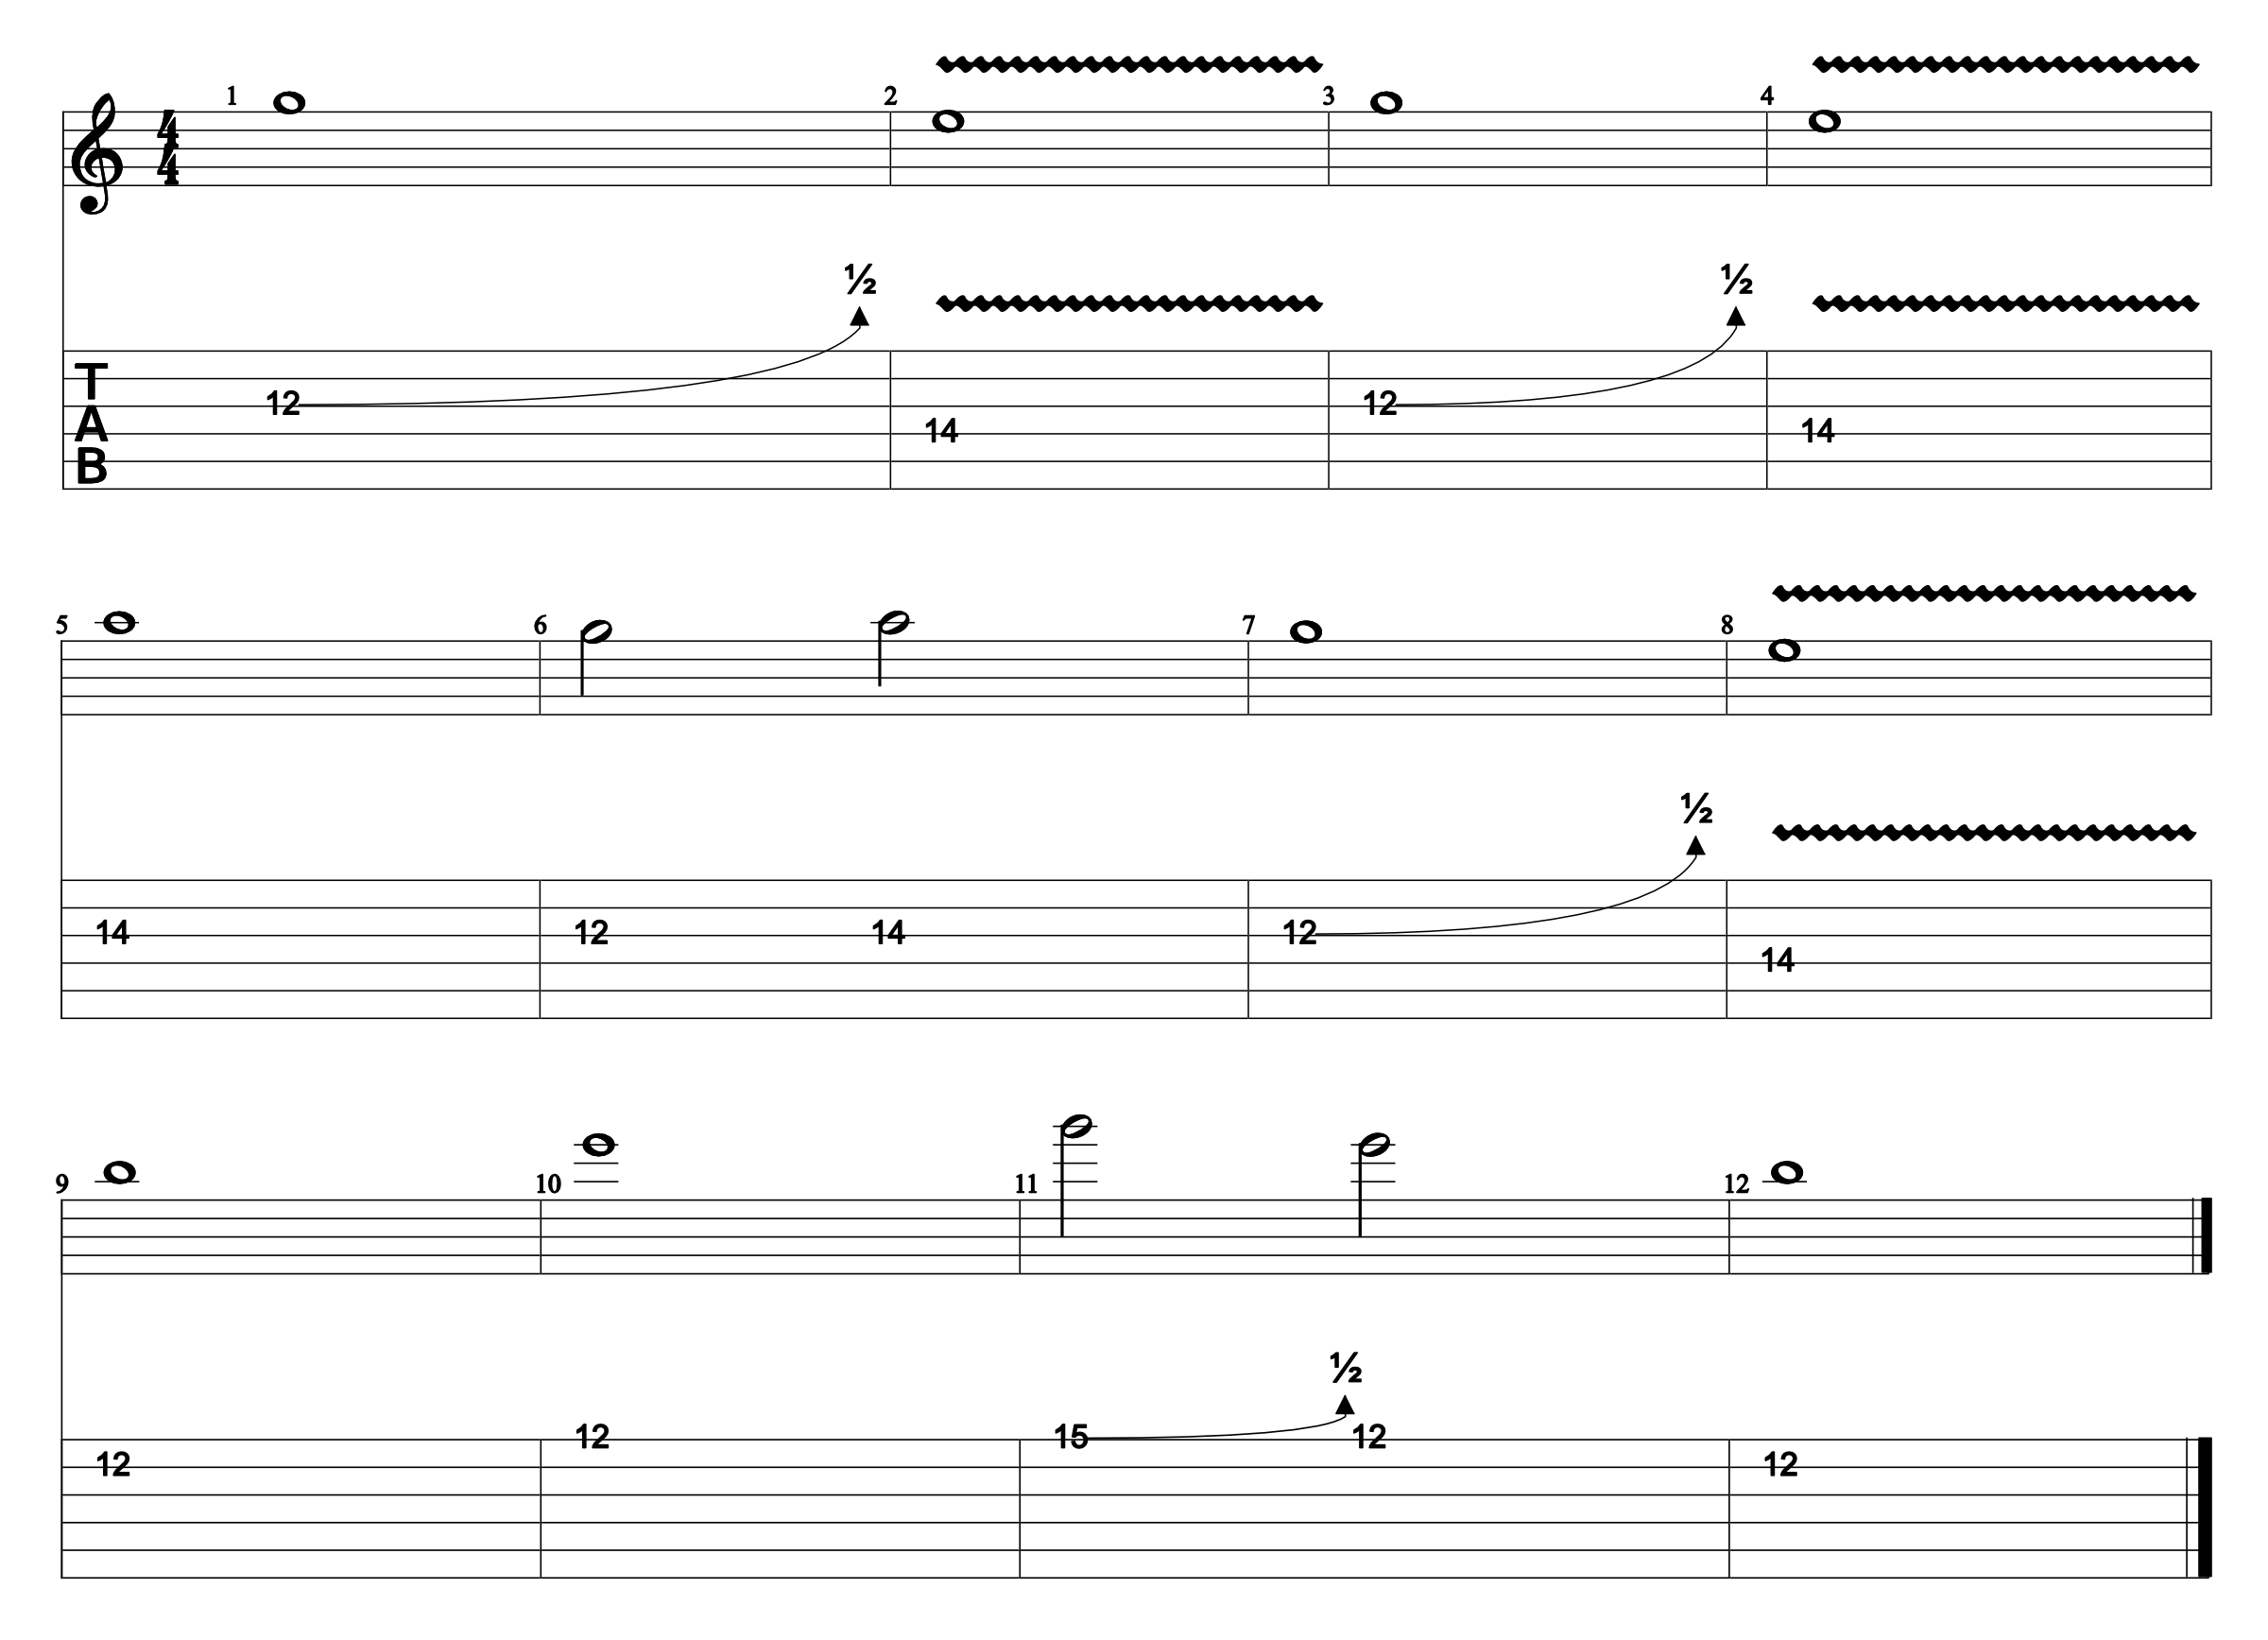 How To Play A Guitar Solo Sheet Music